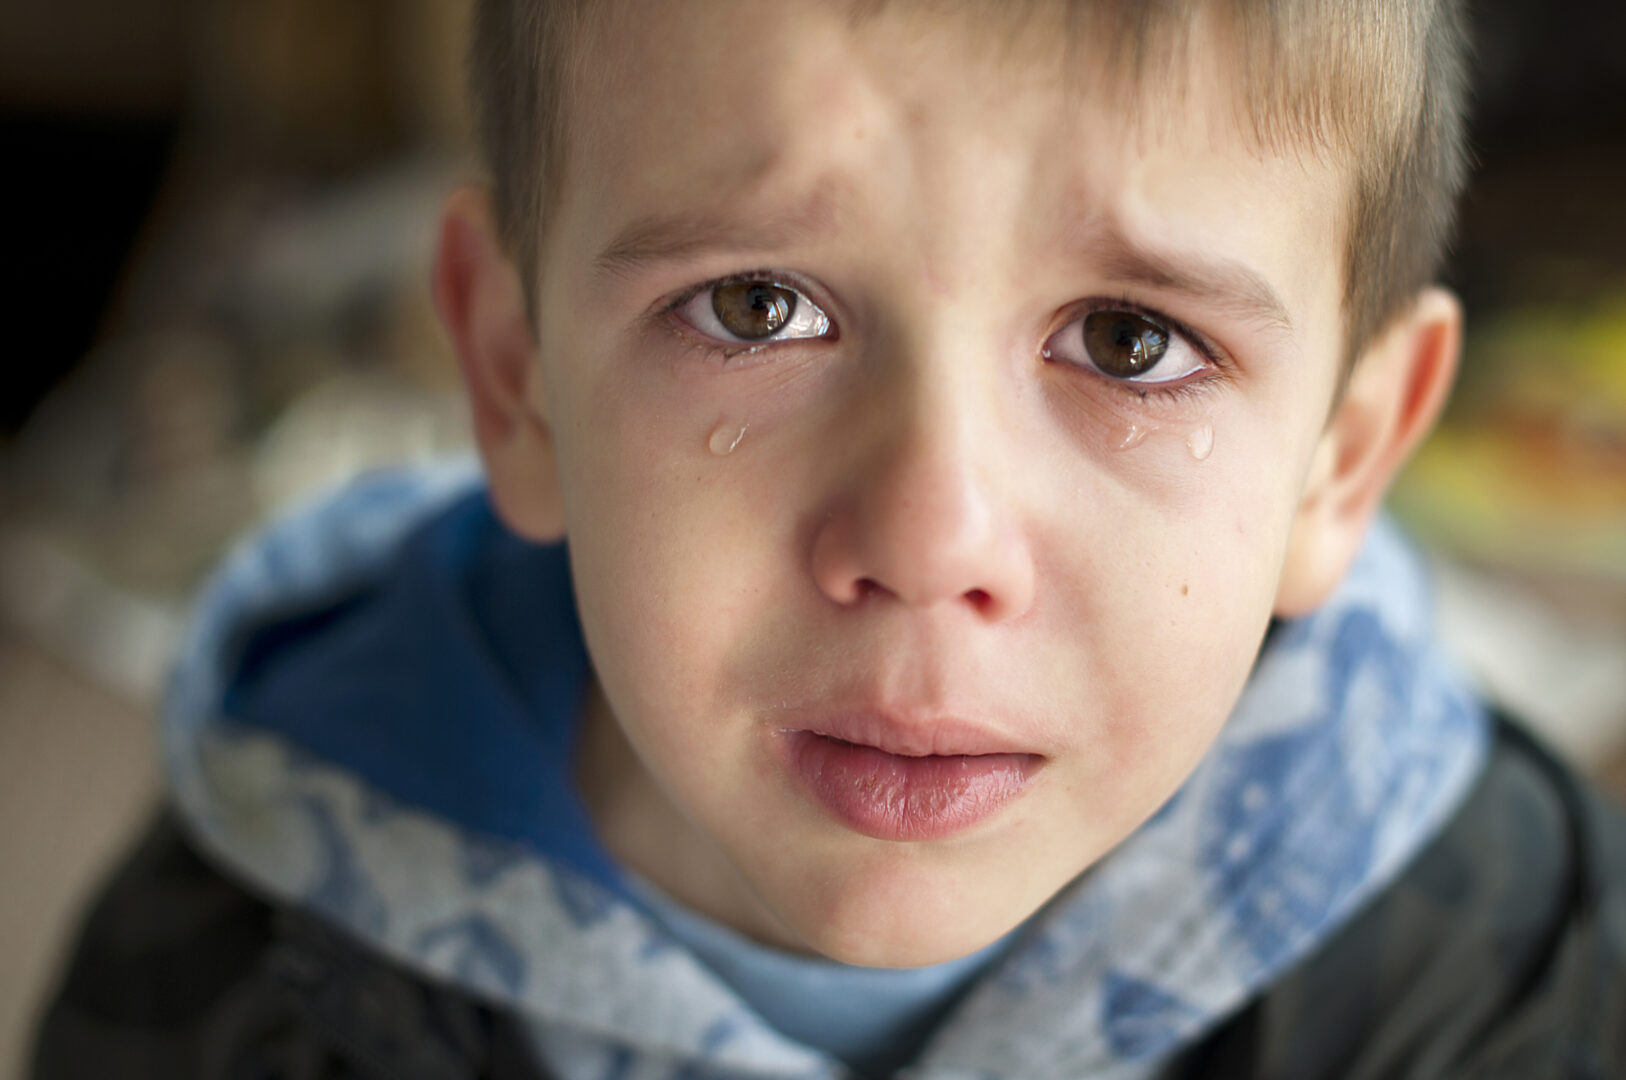 male child crying tears rolling from eyes down cheeks